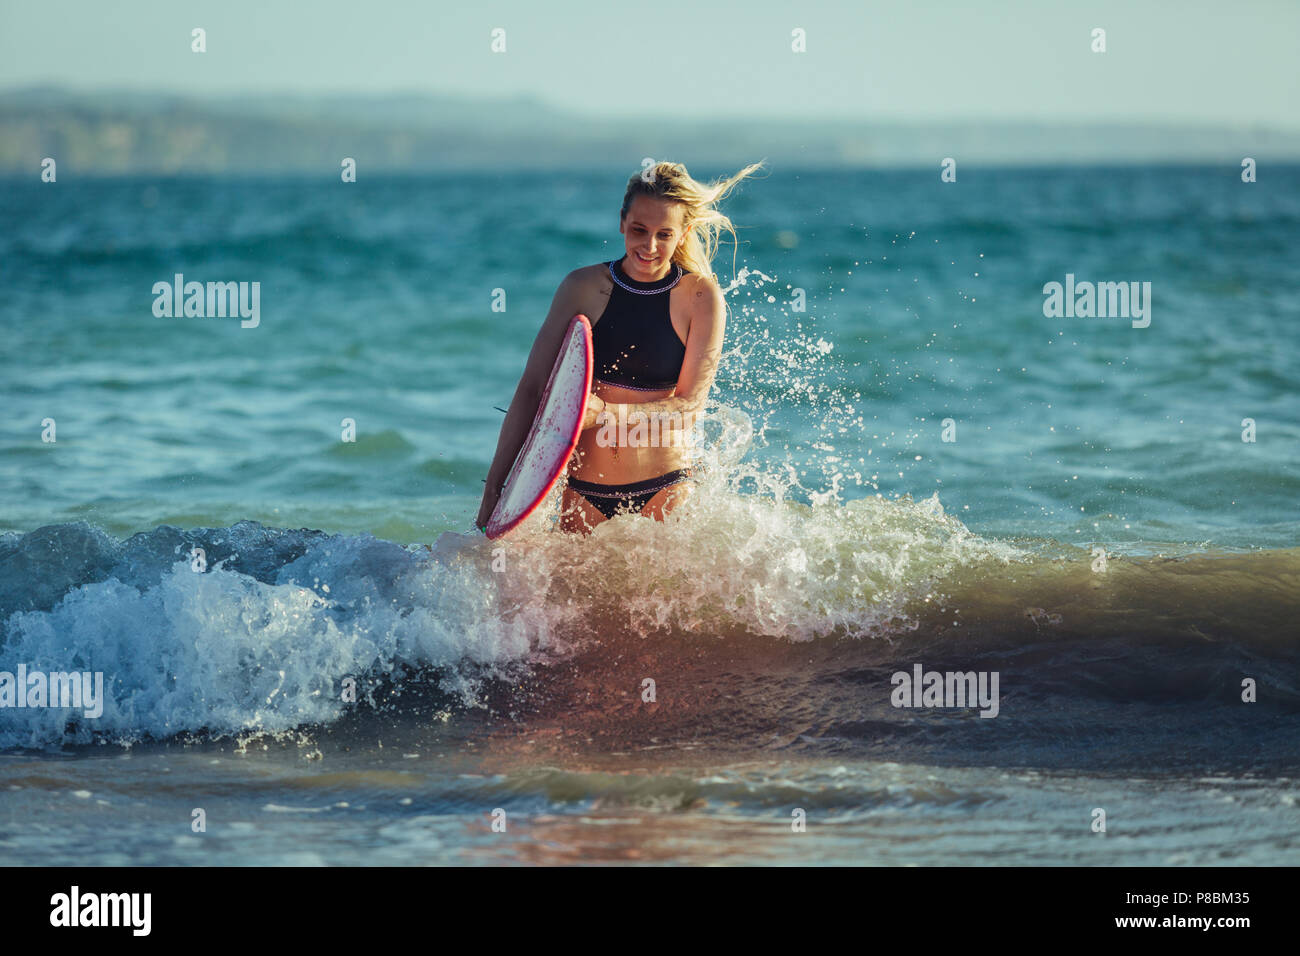 blonde female surfer with surfboard in water - Stock Image